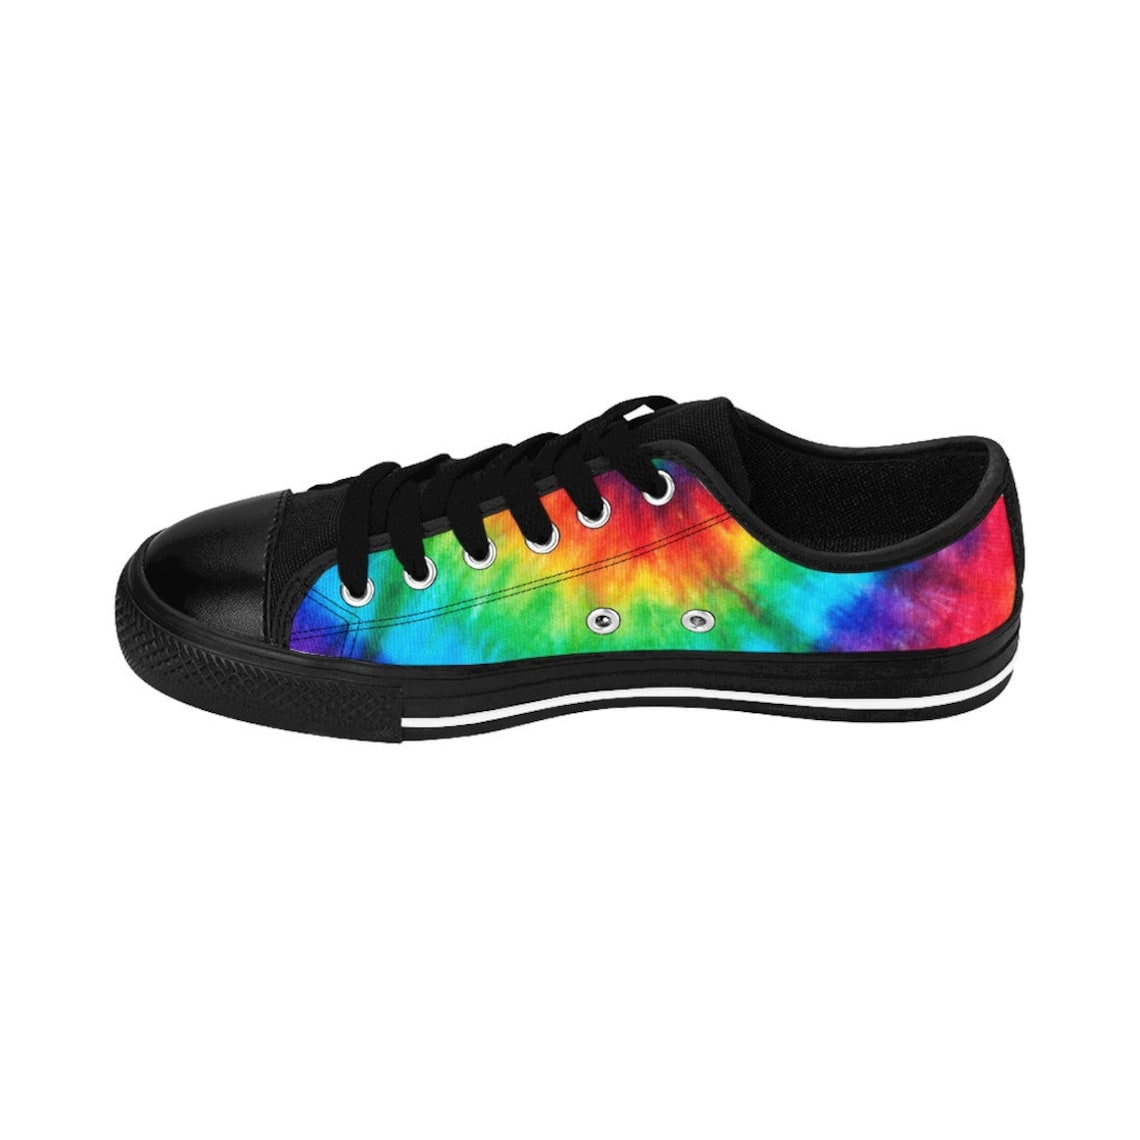 Equality Tie Dye Men's Sneakers